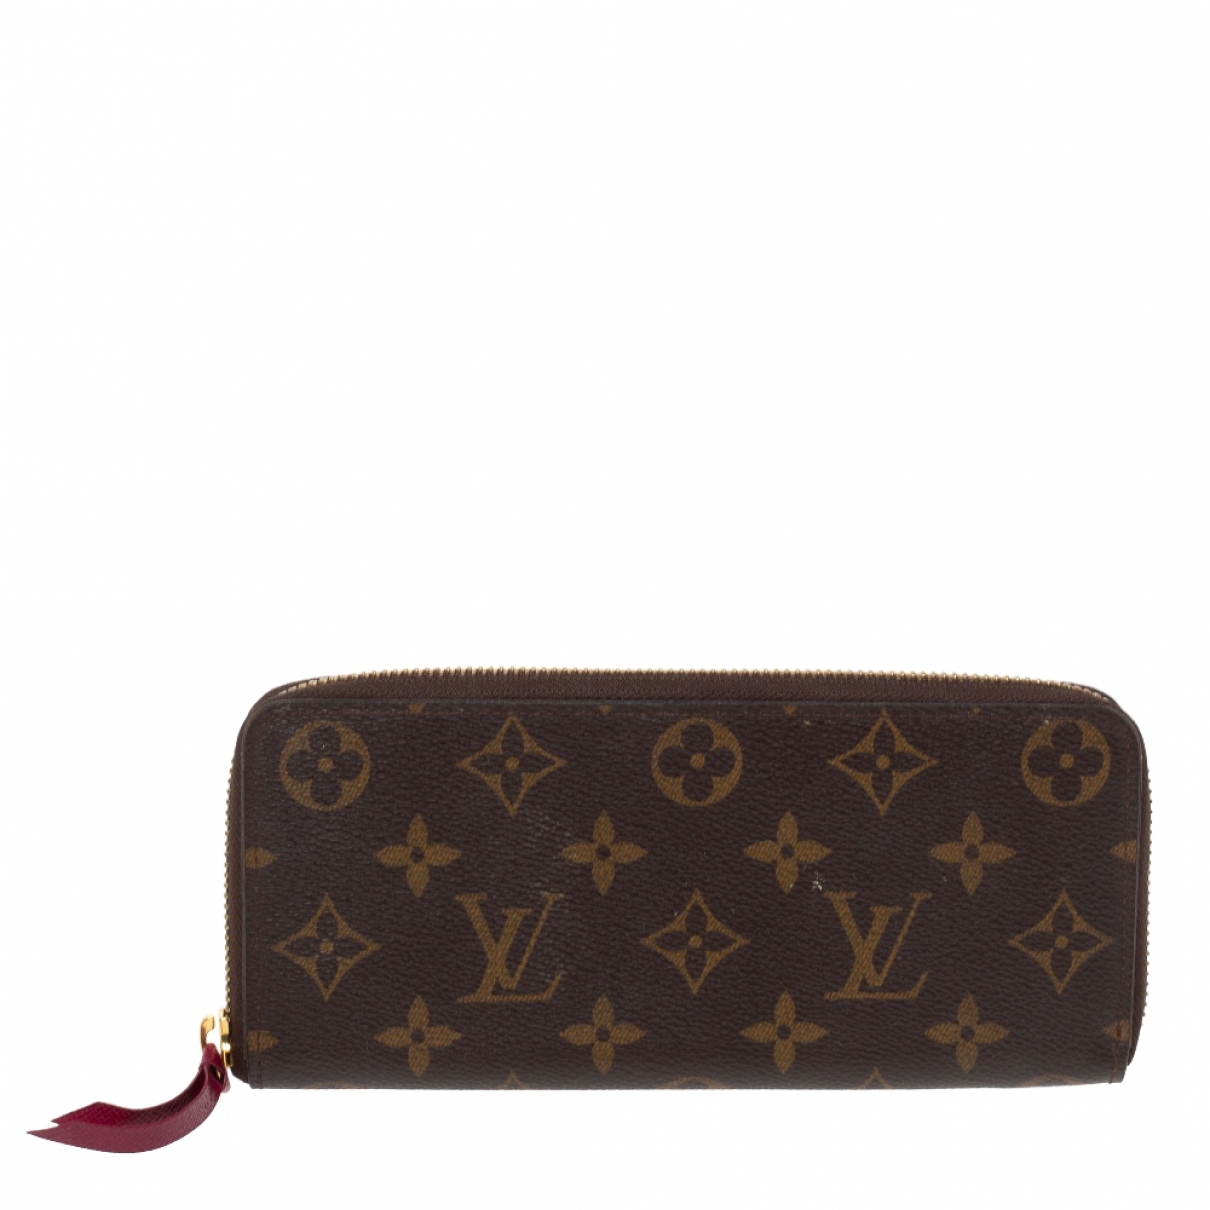 Louis Vuitton Clemence Brown Leather wallet for Women N